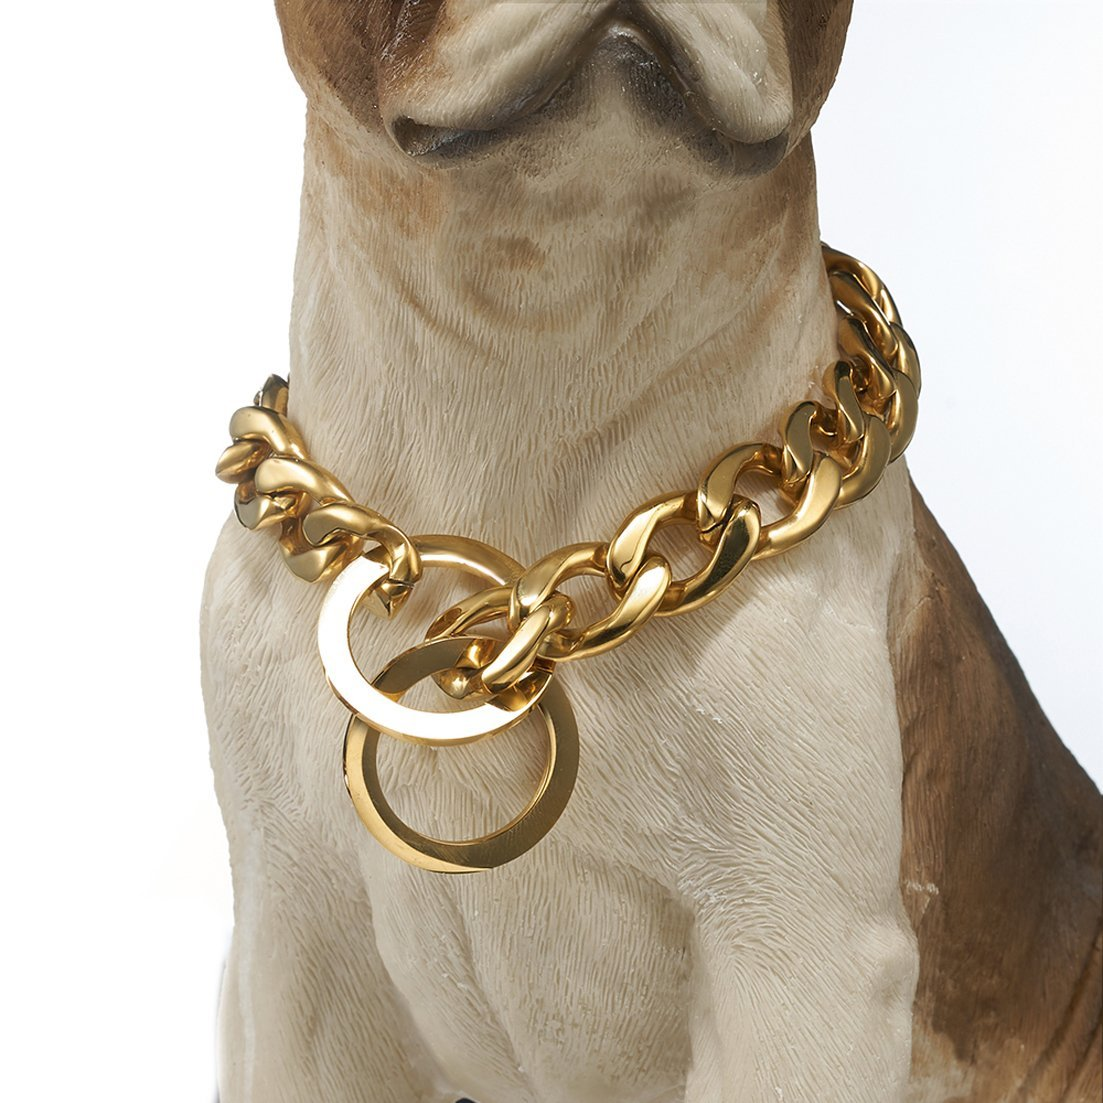 26\ GZMZC 13 15 19mm Strong gold Plated Stainless Steel NK Link Chain Dog Pet Collar Choker Necklace 12-36inch(26inches,15mm)